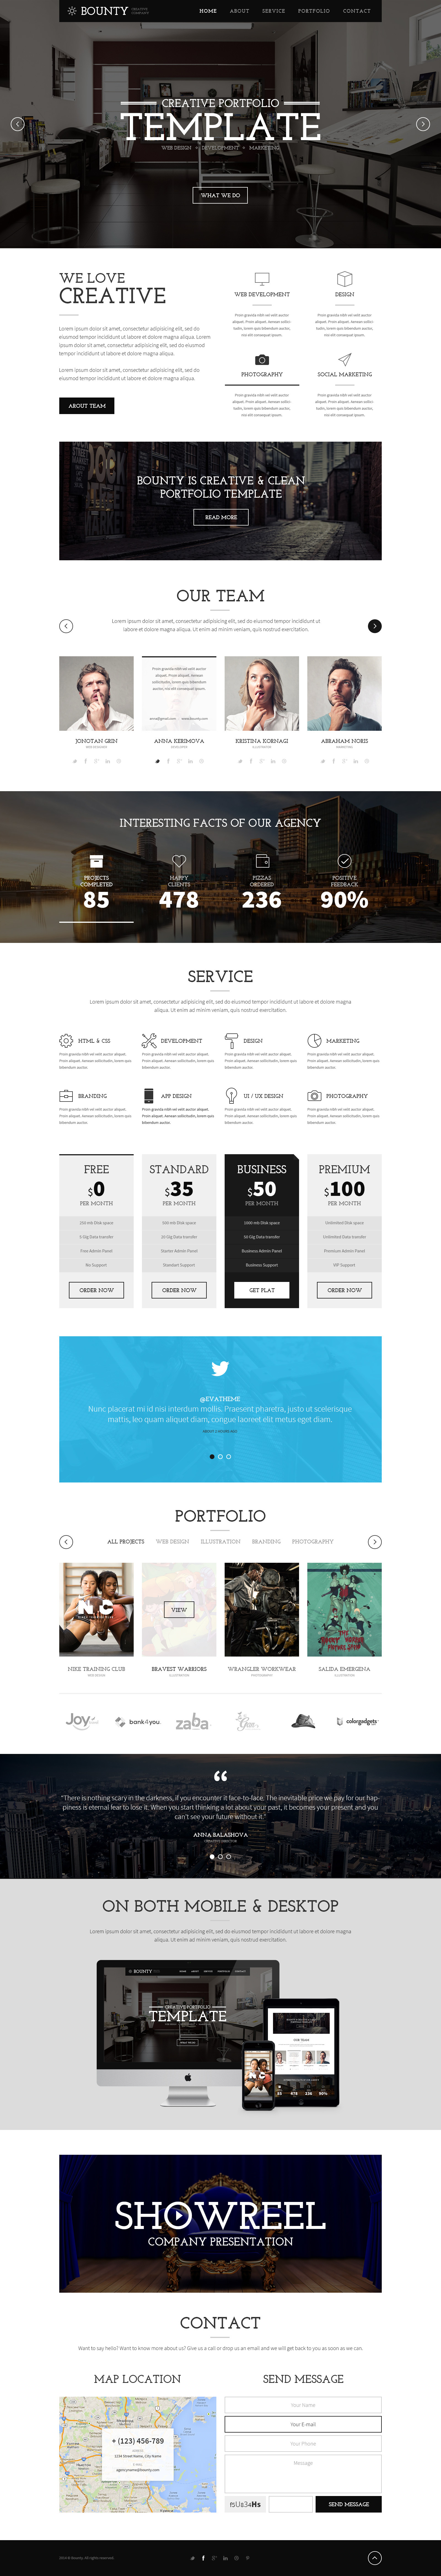 Bounty - One Page Creative Clean Template